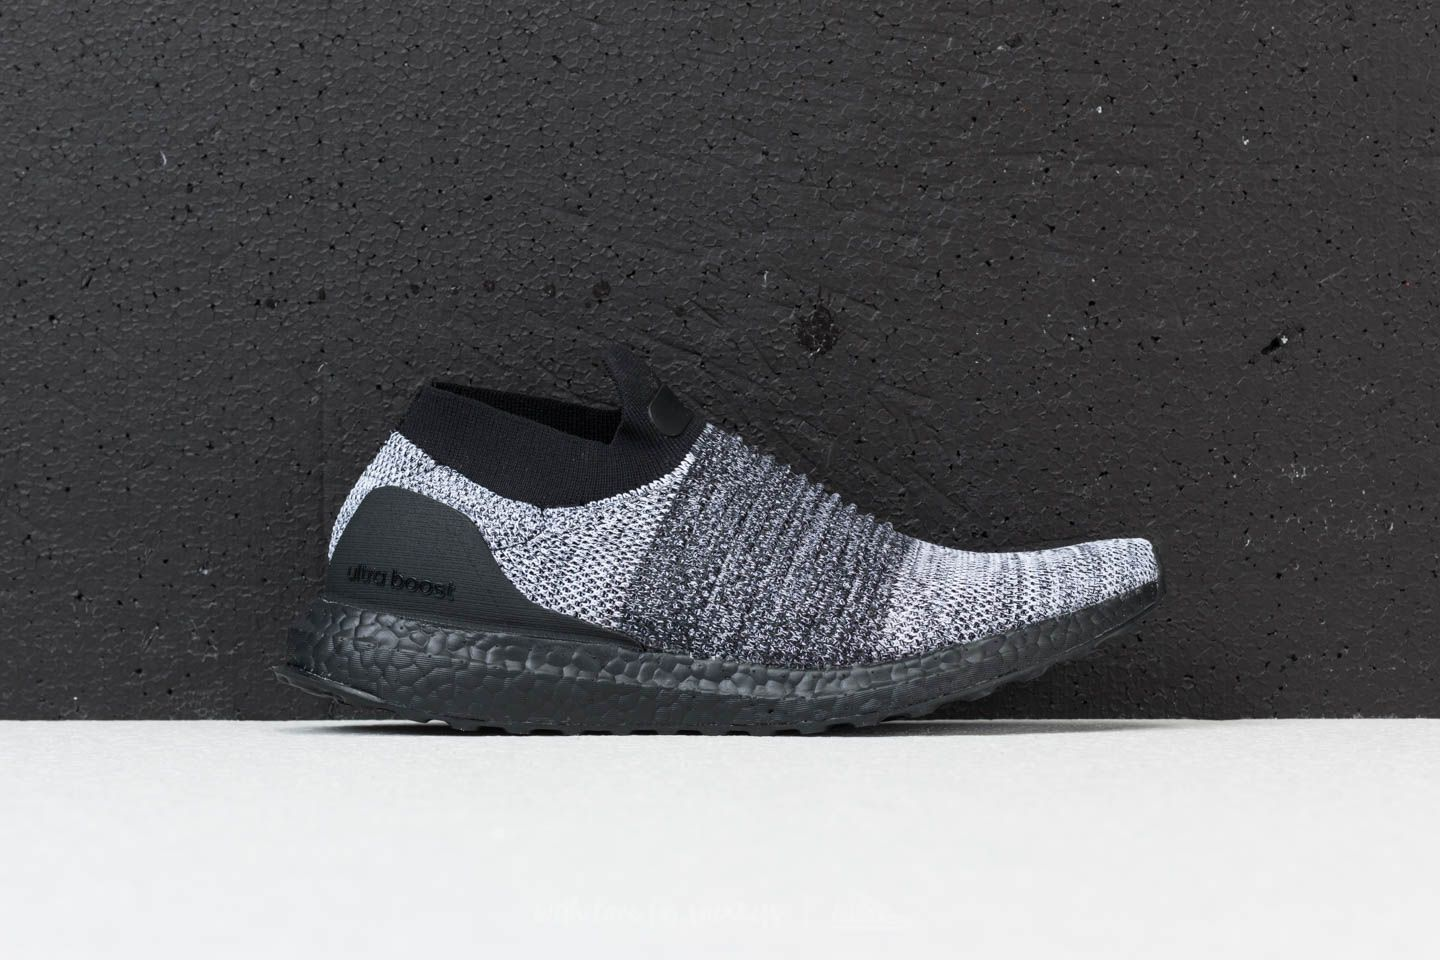 adidas Ultraboost Laceless Core Black  Core Black  Ftw White at a great  price 154 d247c7bac